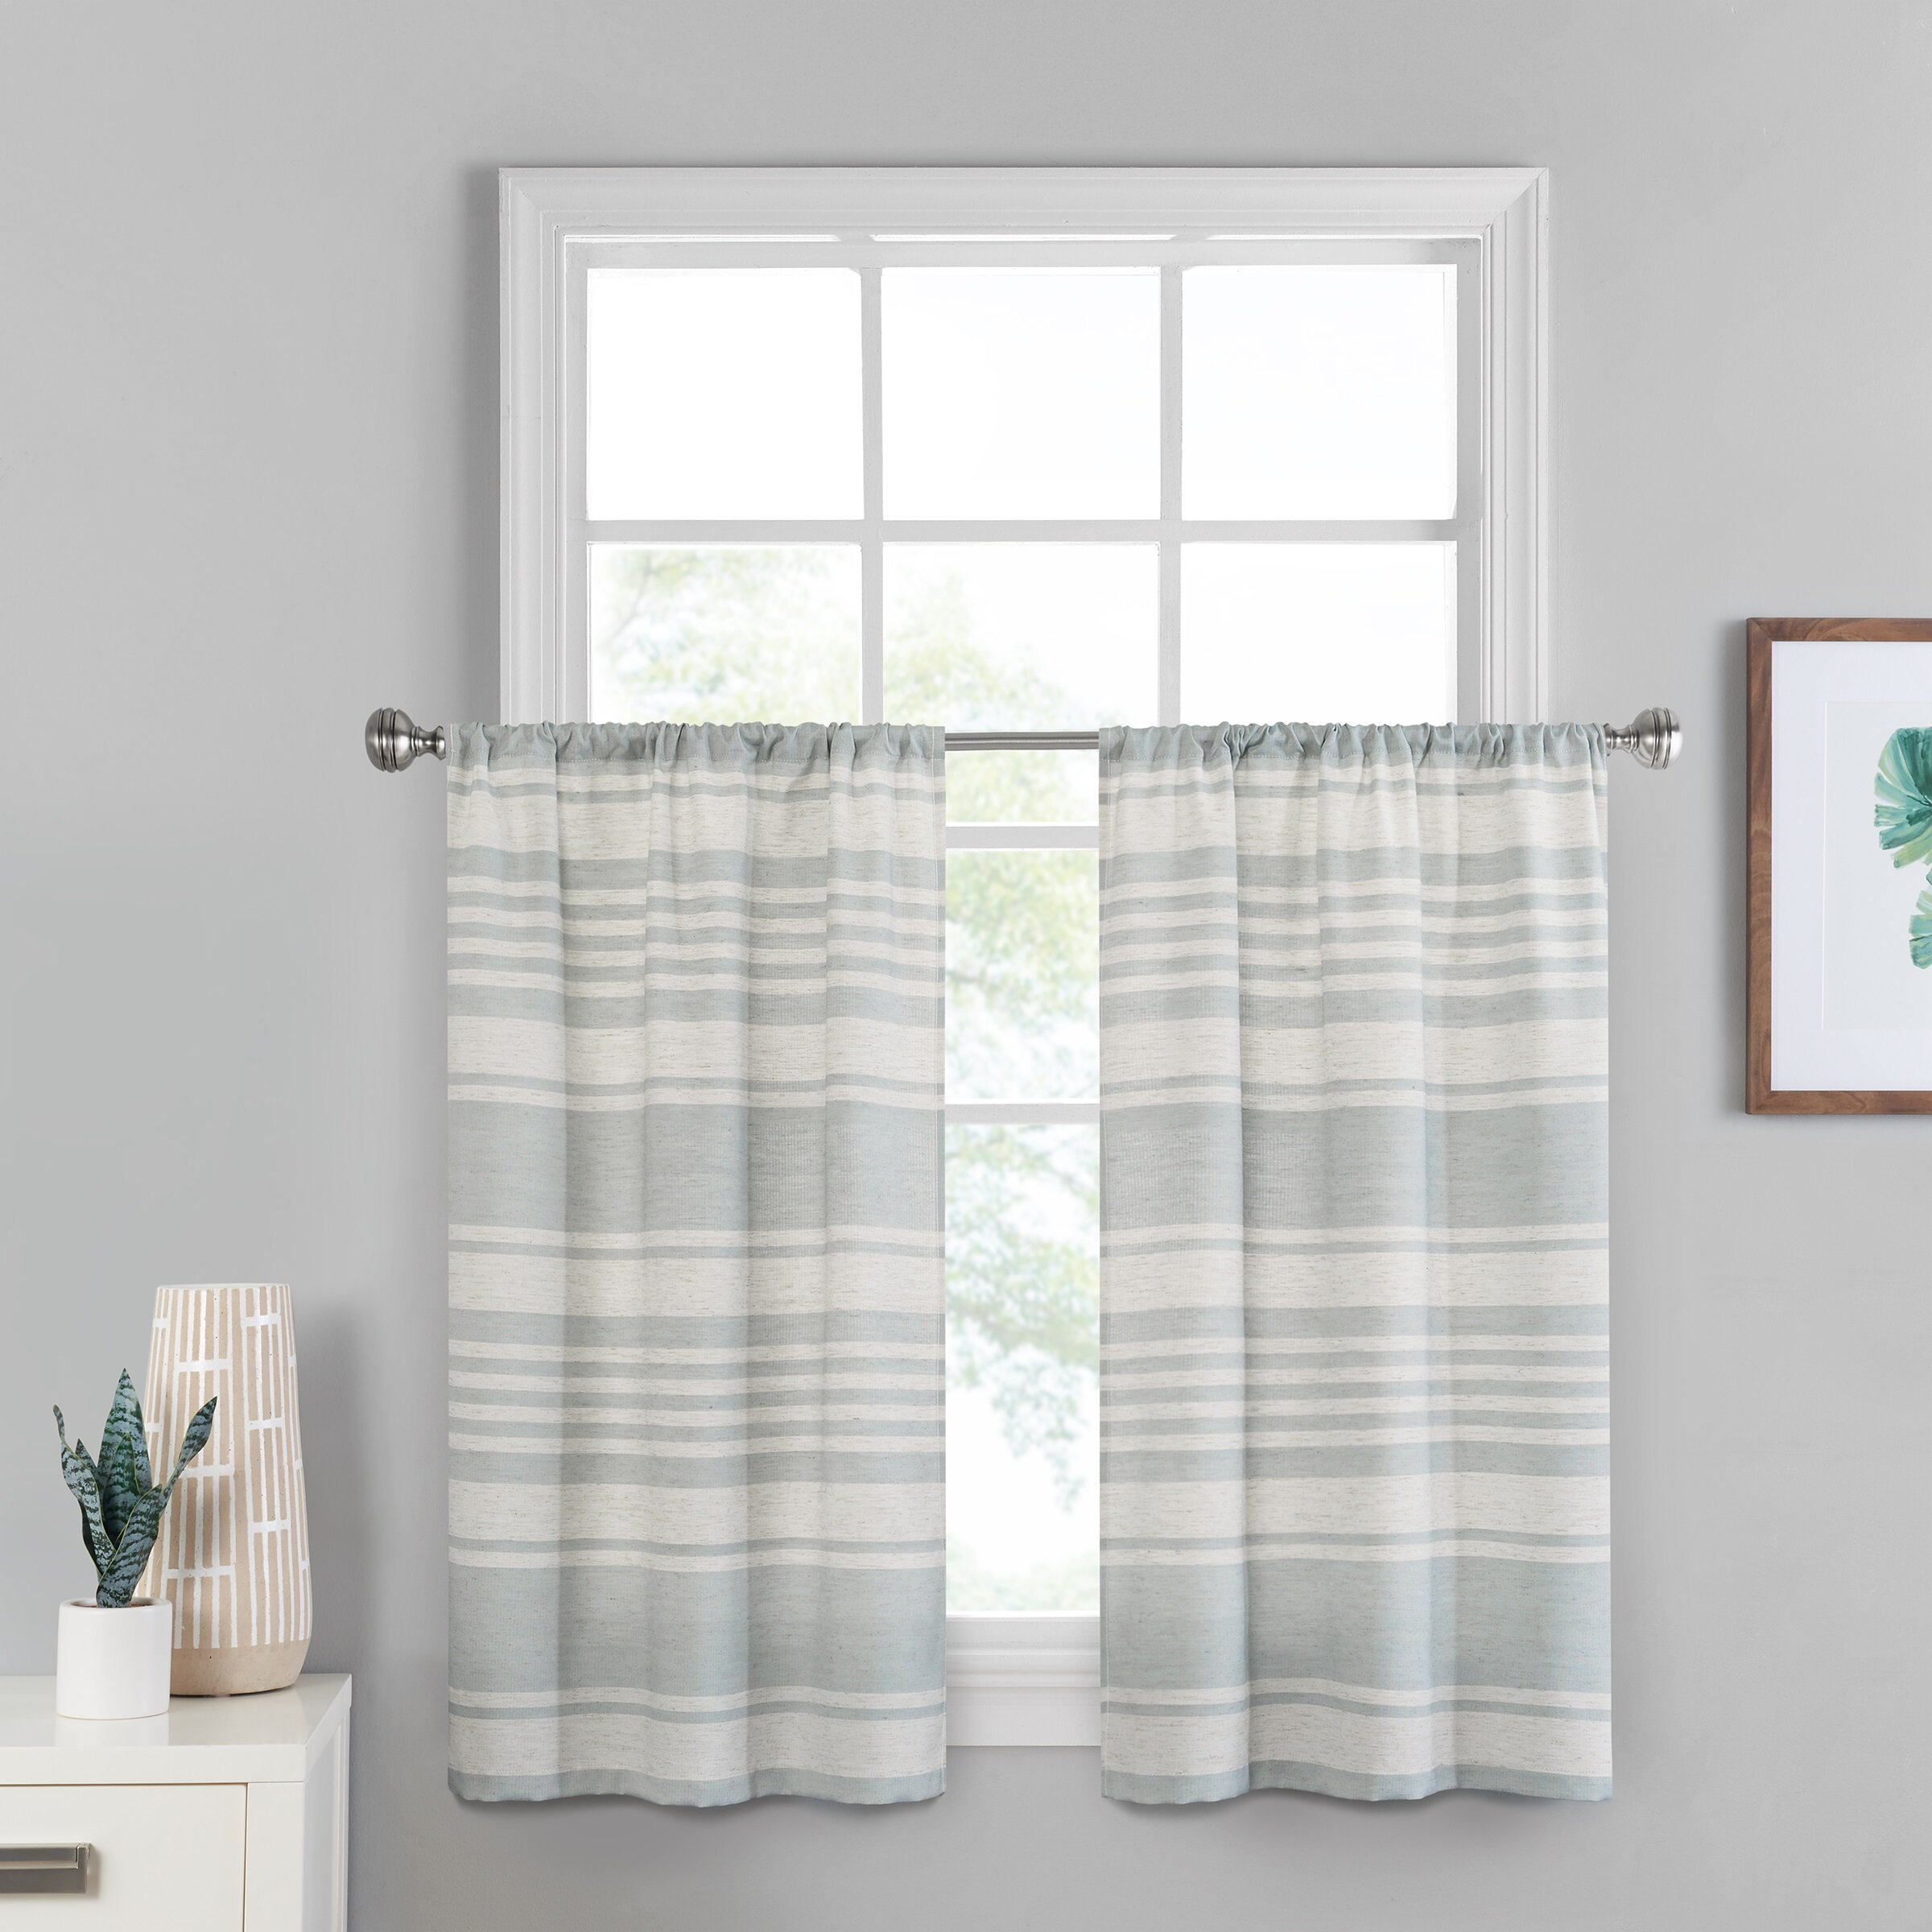 Scheffler Window Solutions Kitchen Curtain Intended For Geometric Print Microfiber 3 Piece Kitchen Curtain Valance And Tiers Sets (View 8 of 20)